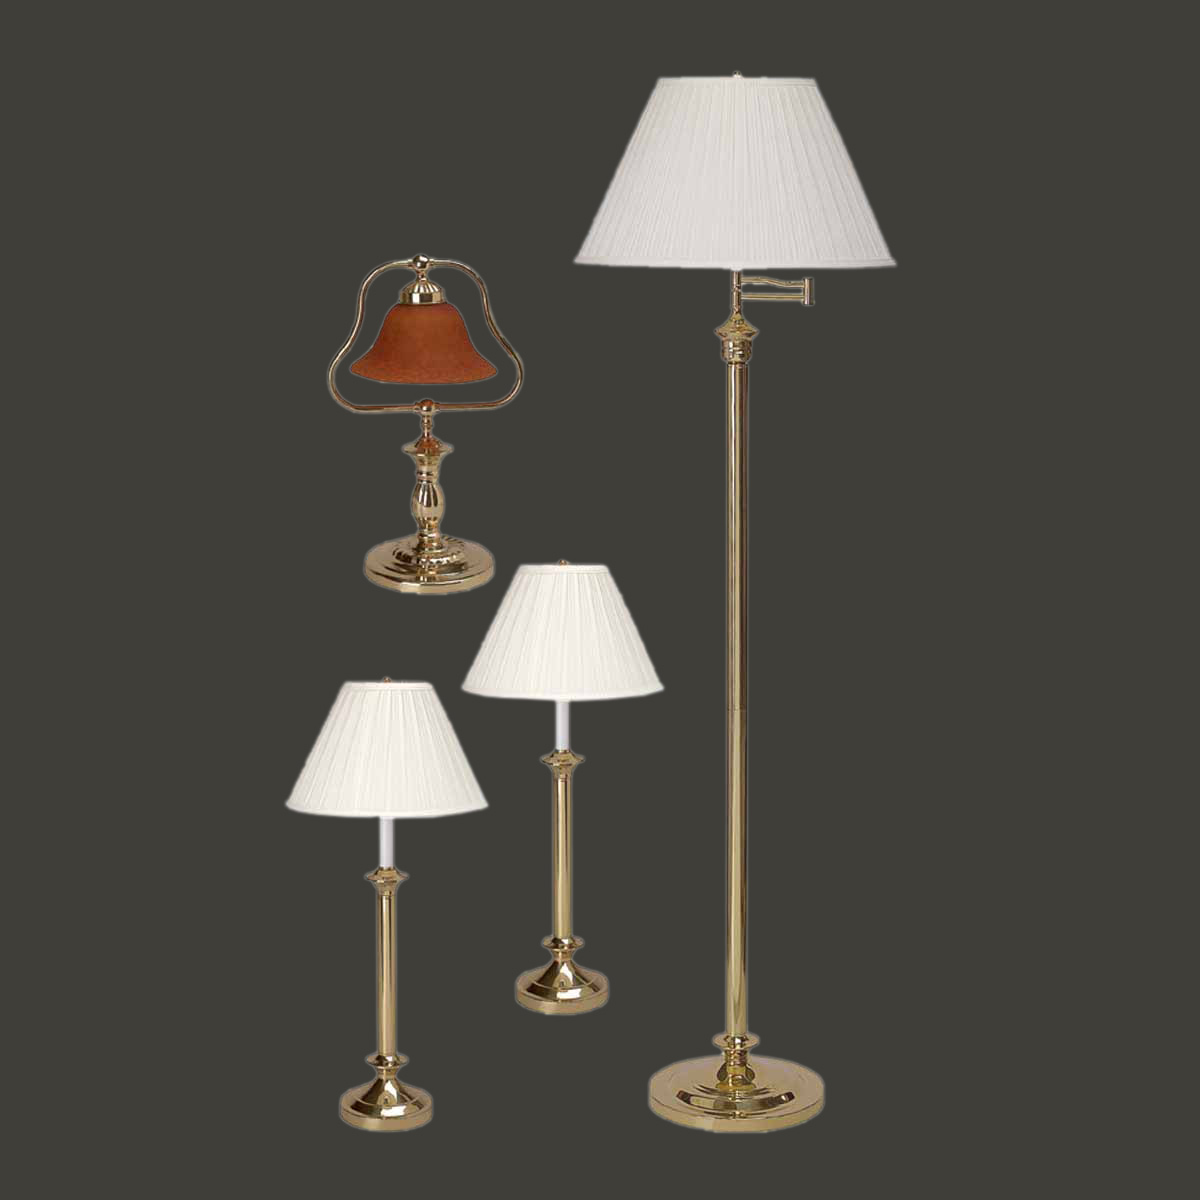 Floor lamp bright brass traditional 4 pc lamp set tablefloor lamp bright brass traditional 4 pc lamp set aloadofball Image collections